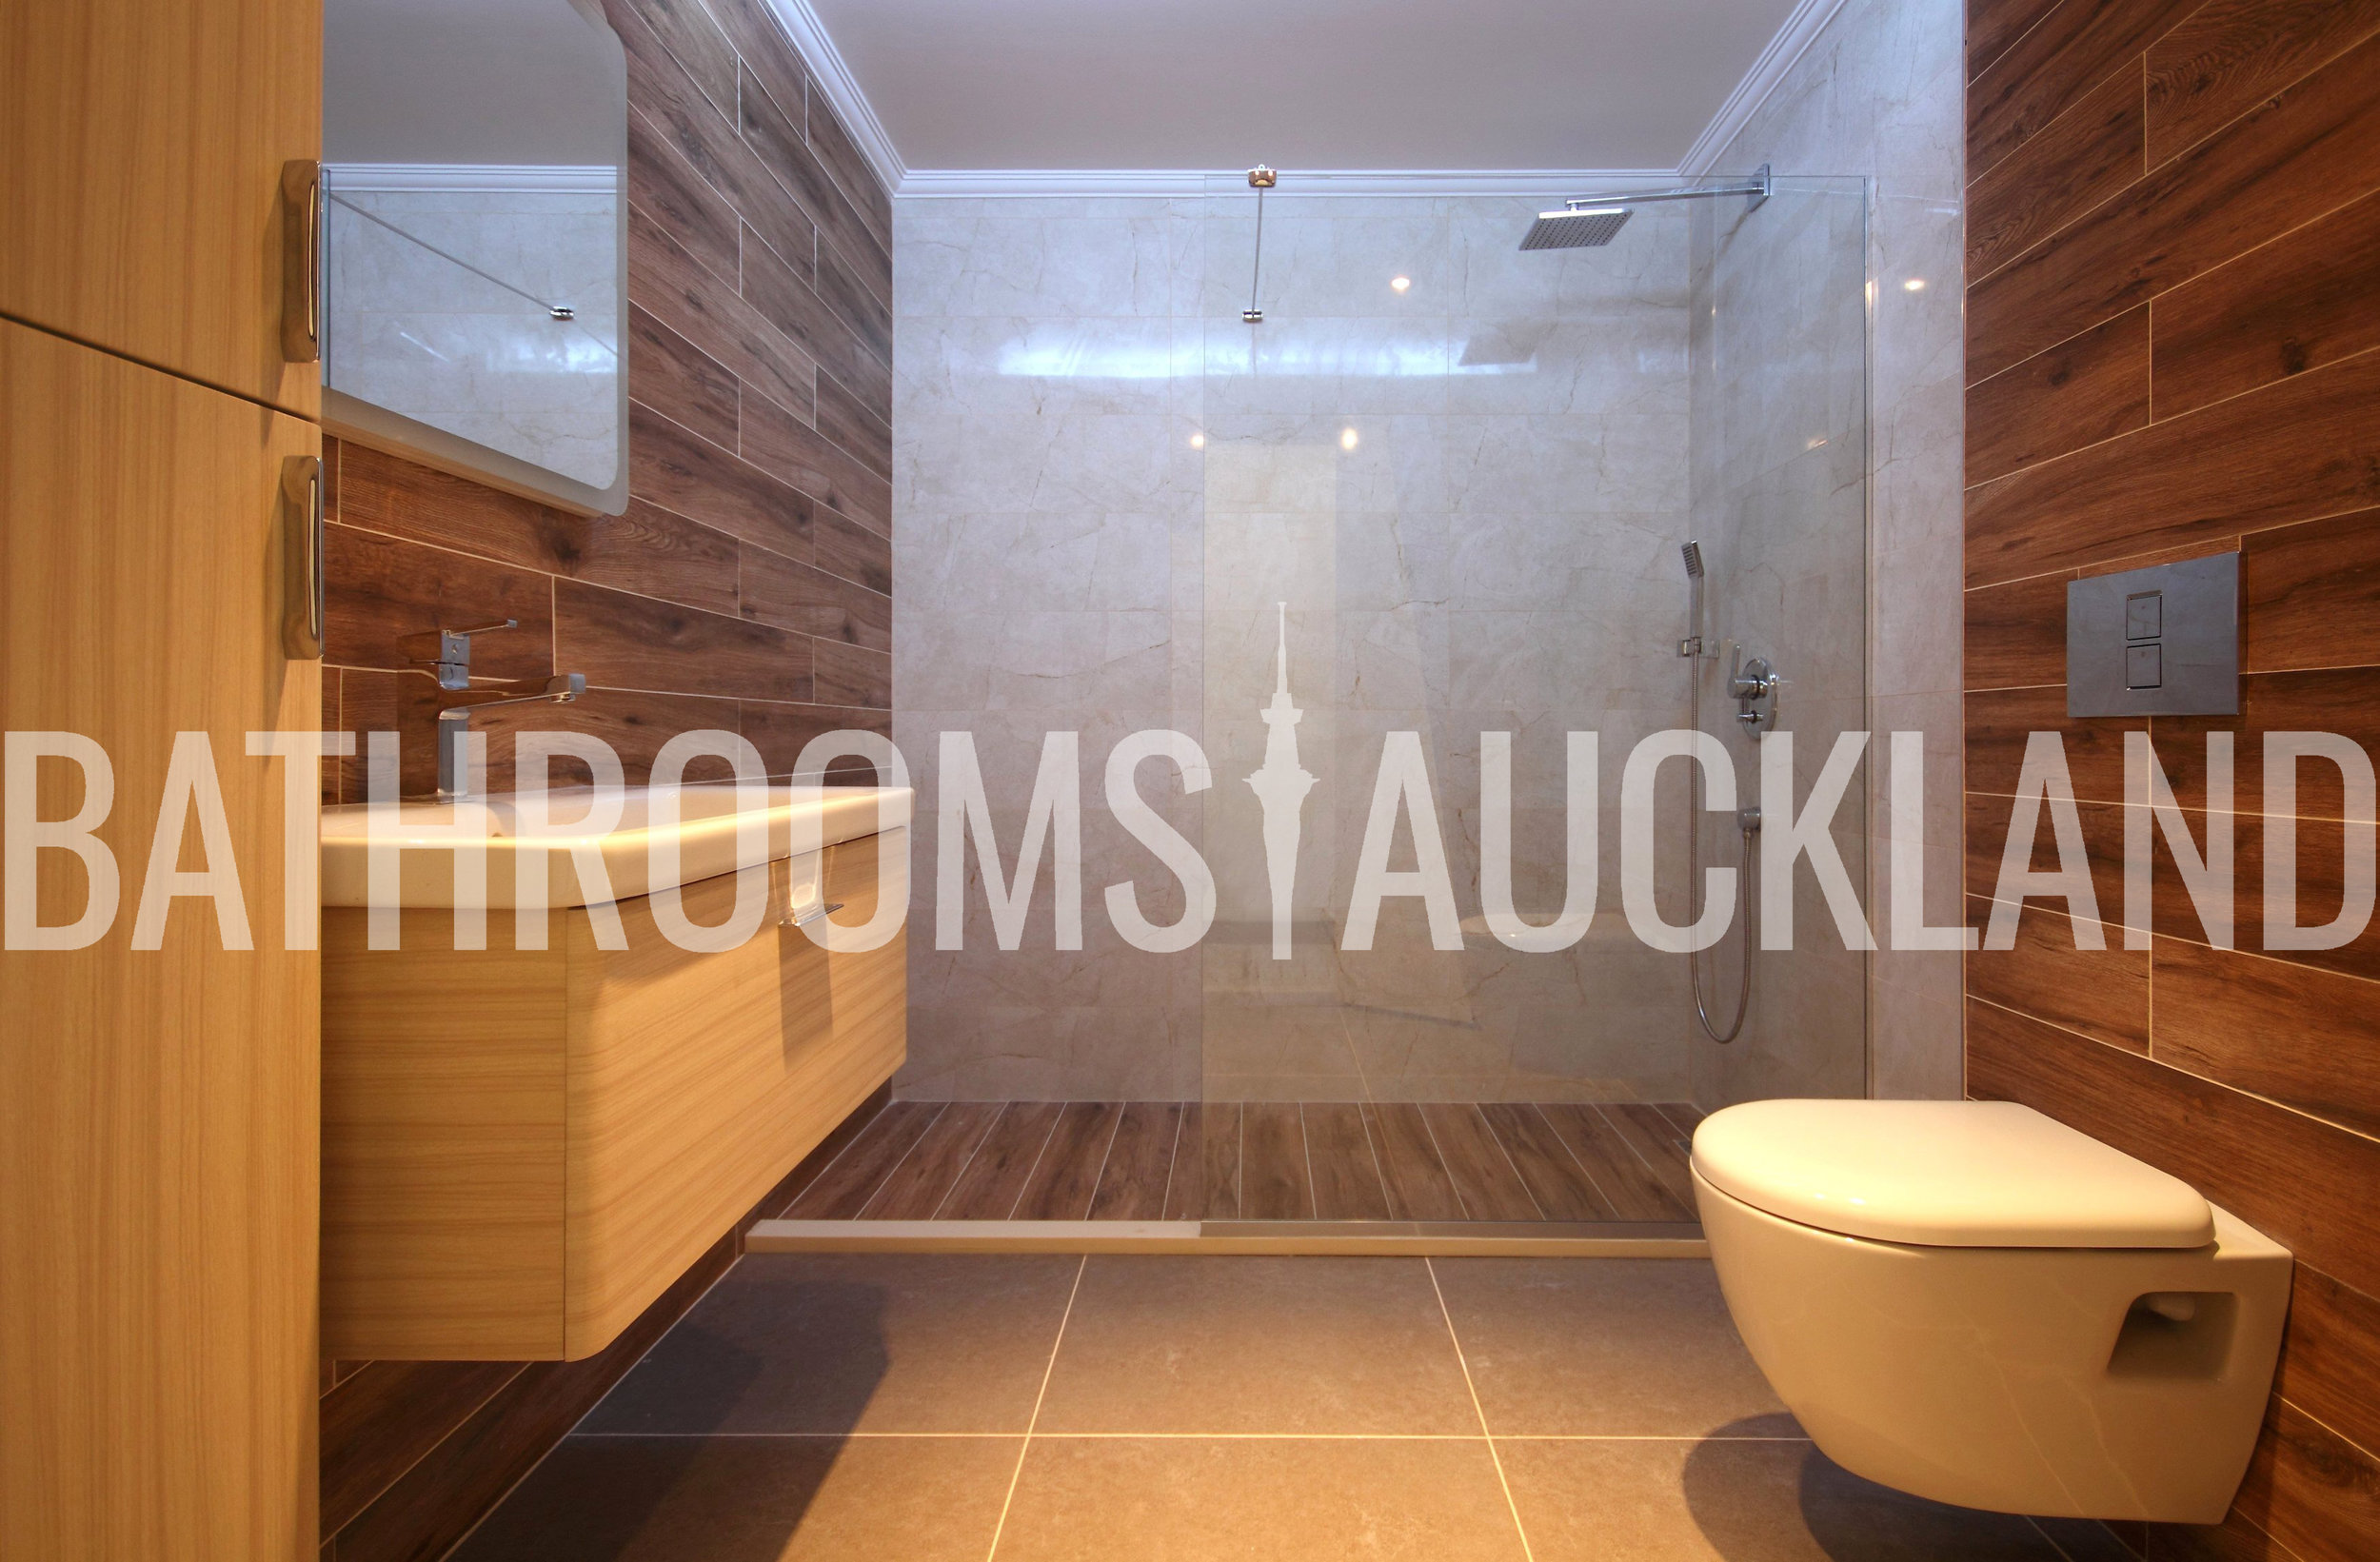 Bathrooms Auckland Renovation_Bathrooms In Auckland_Bathroom Renovation_Bathrooms Renovation_Bathrooms Auckland Renovation .1223.jpg